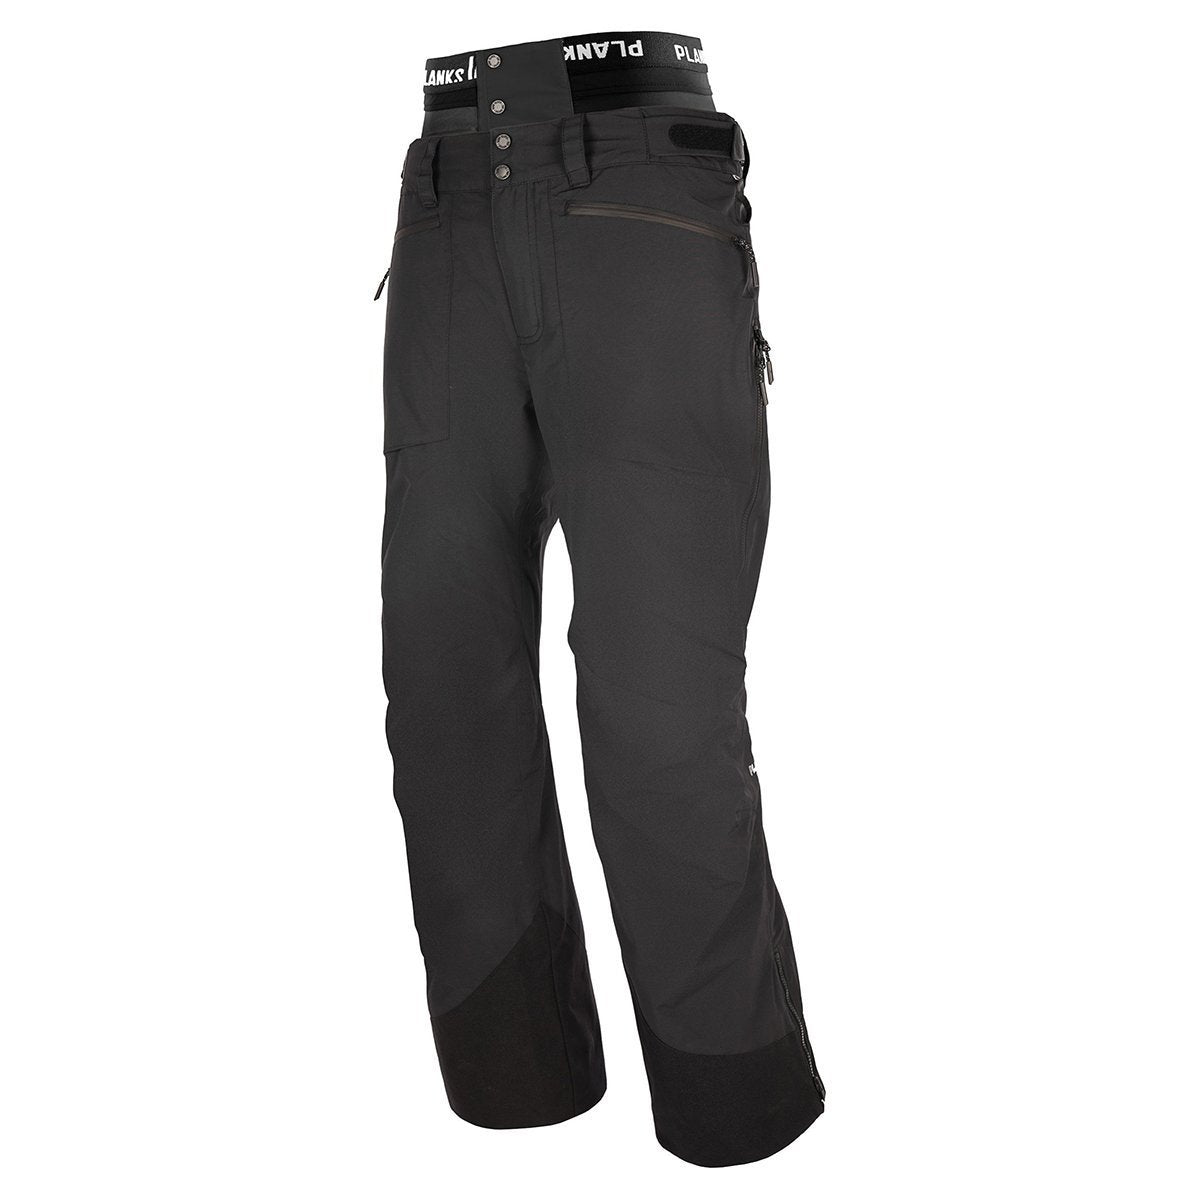 MO-YTP101B-S, Planks, Men's Tracker Insulated Pant, Black, Mens Snow Jacket